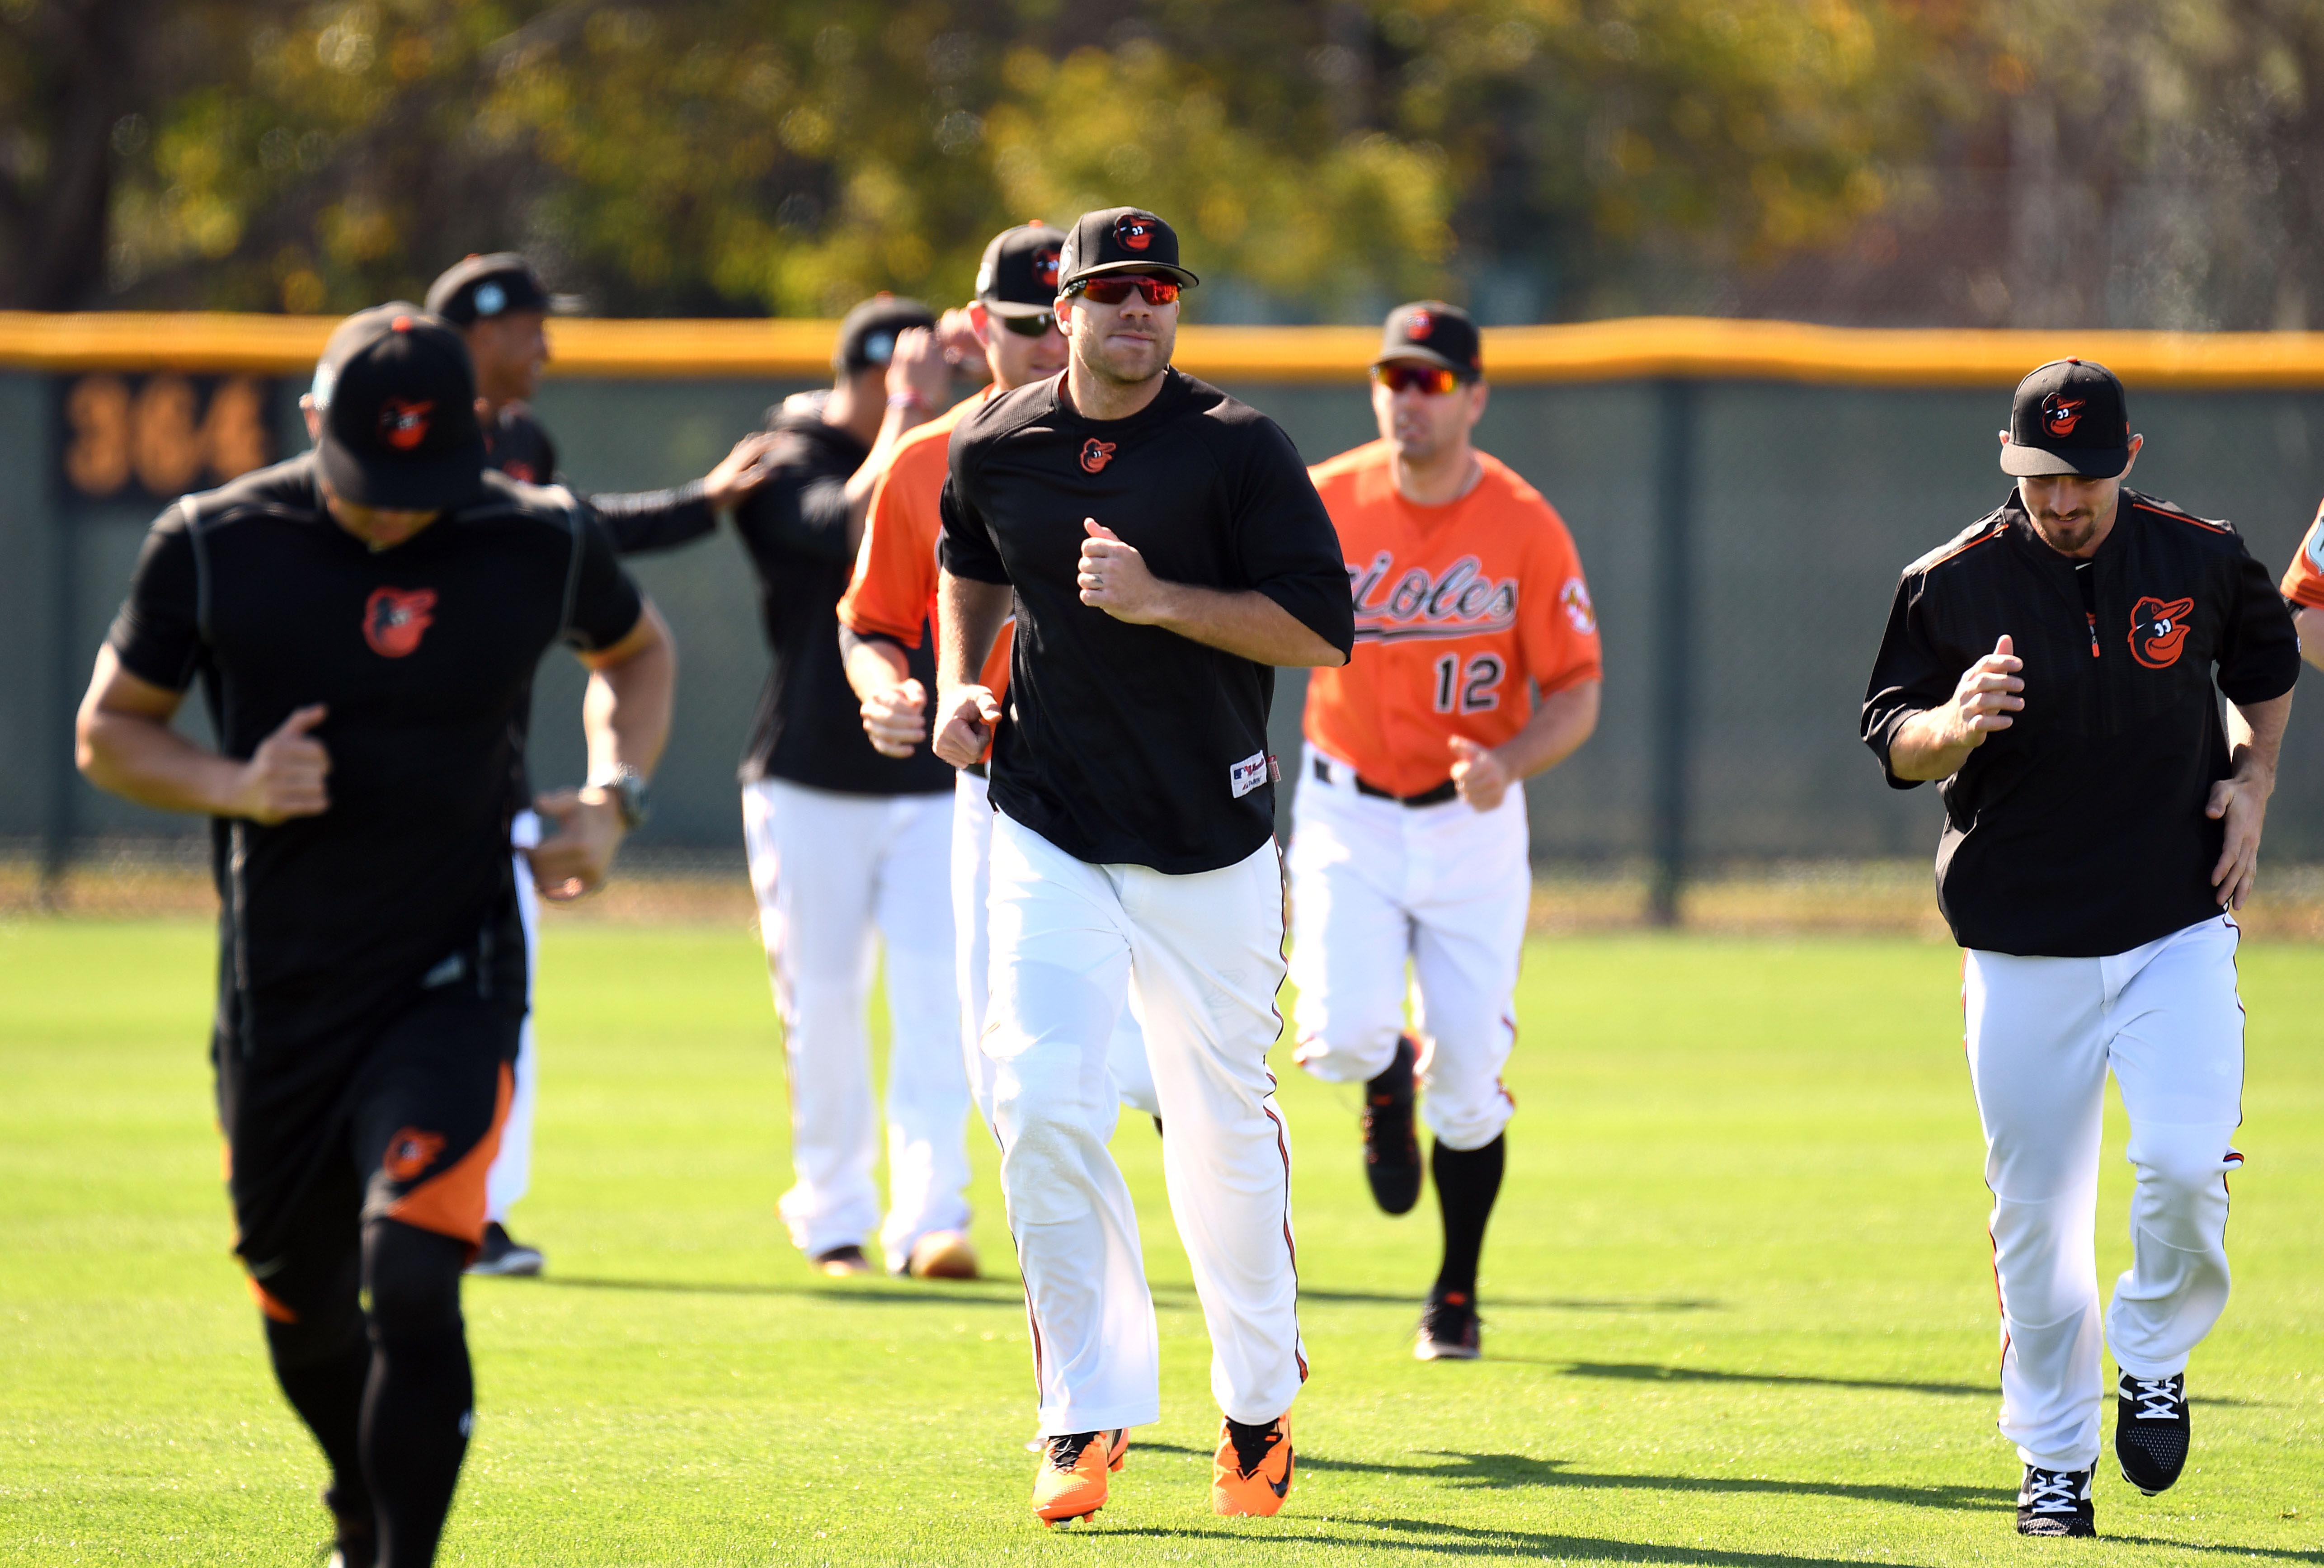 9881957-mlb-baltimore-orioles-workouts